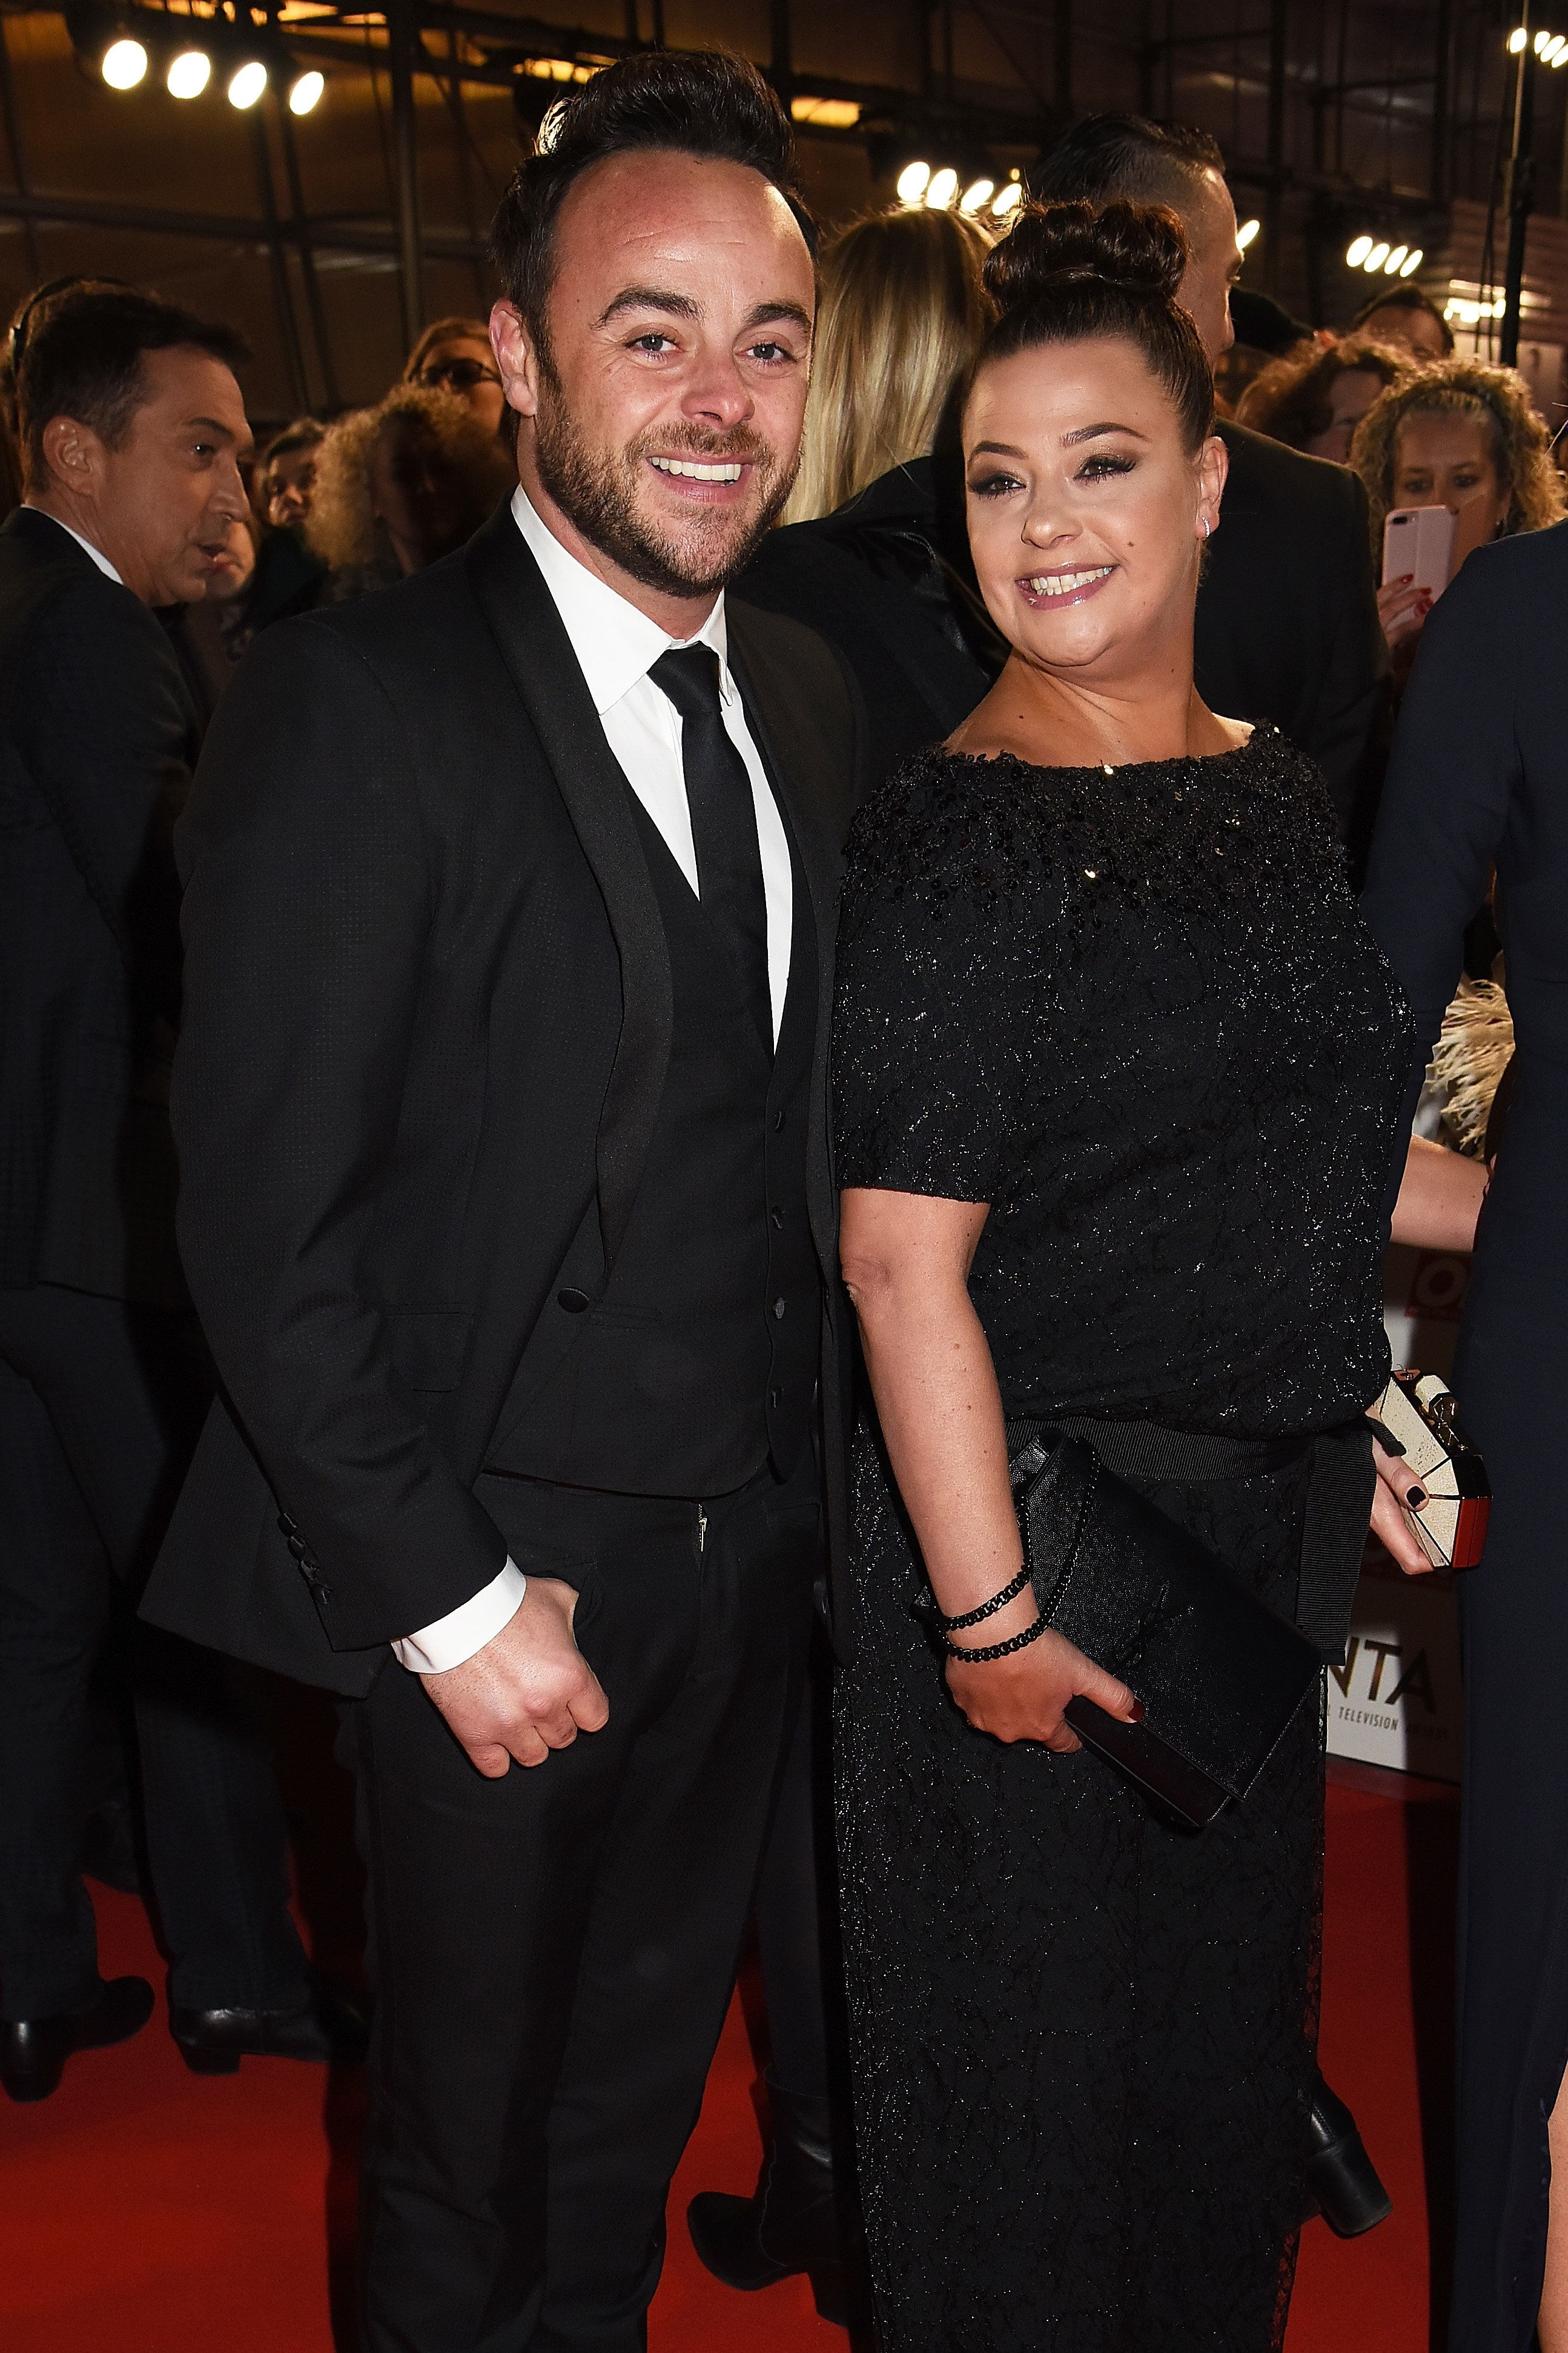 DIVORCED: Ant McPartlin And Ex-Wife Lisa Armstrong Granted